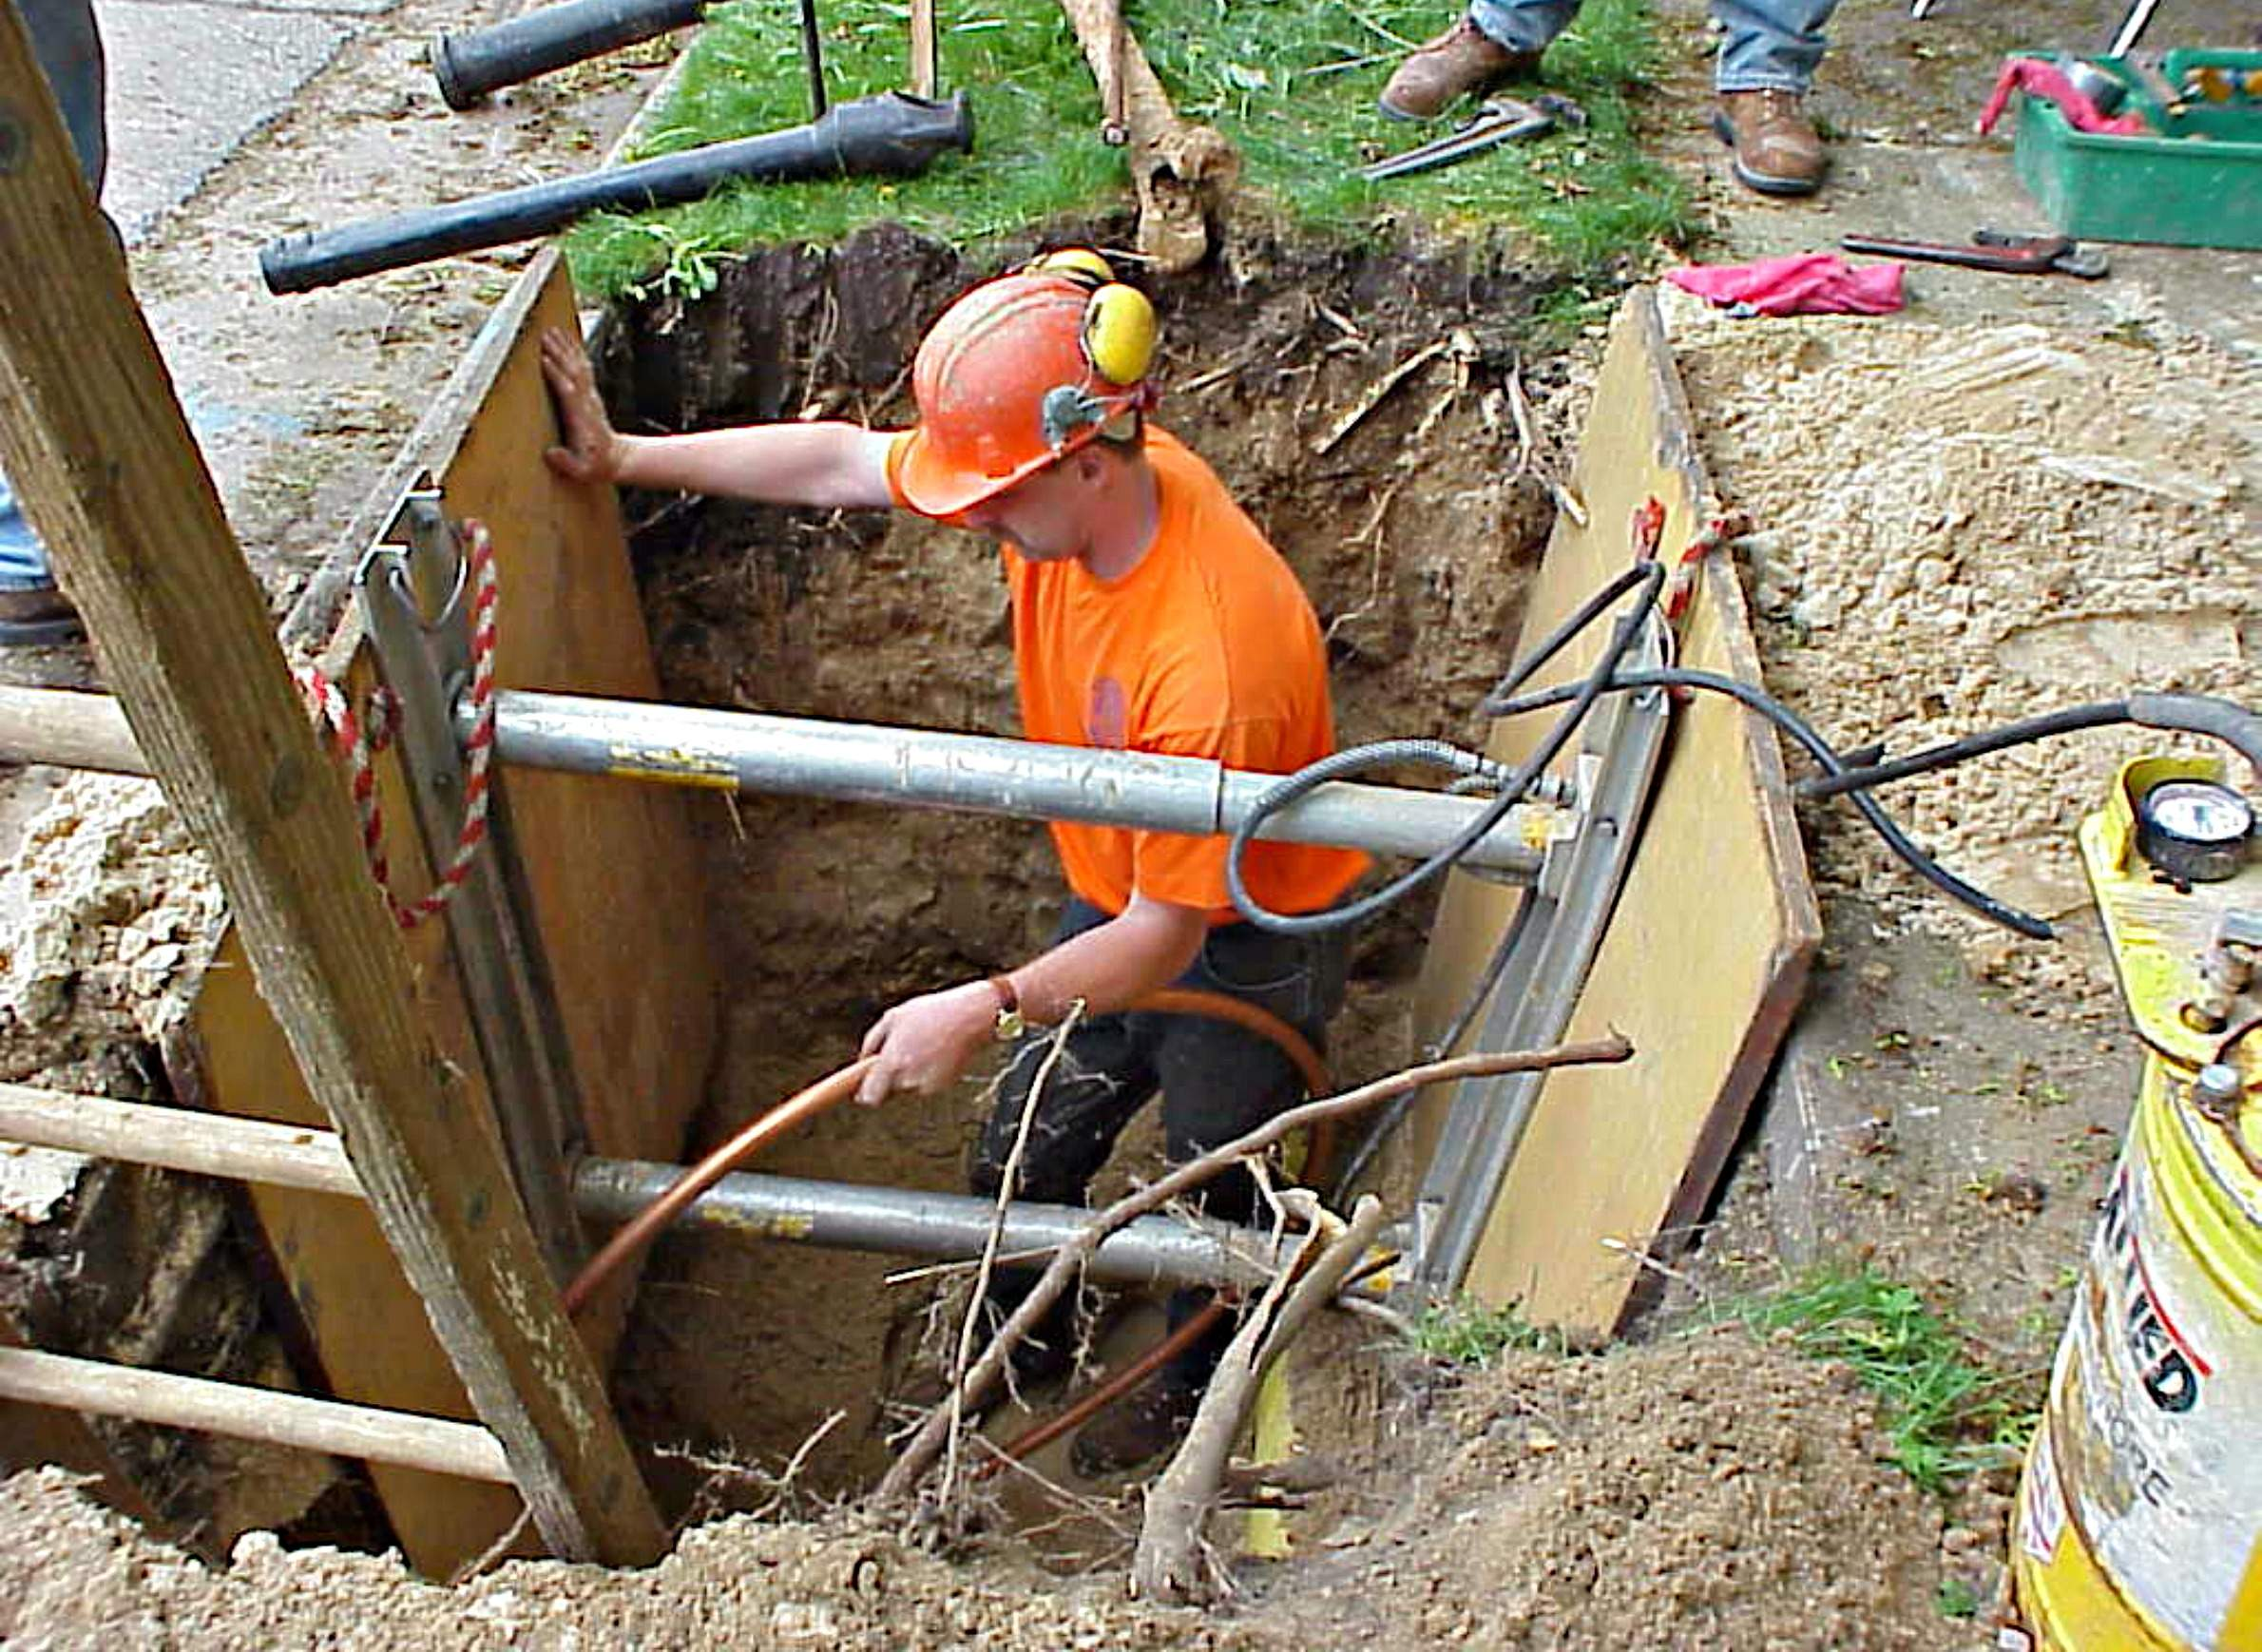 Worker replacing lead pipes in Madison & DNRu0027s Lead Pipe Program Covers Fraction Of Likely Cost   WisContext